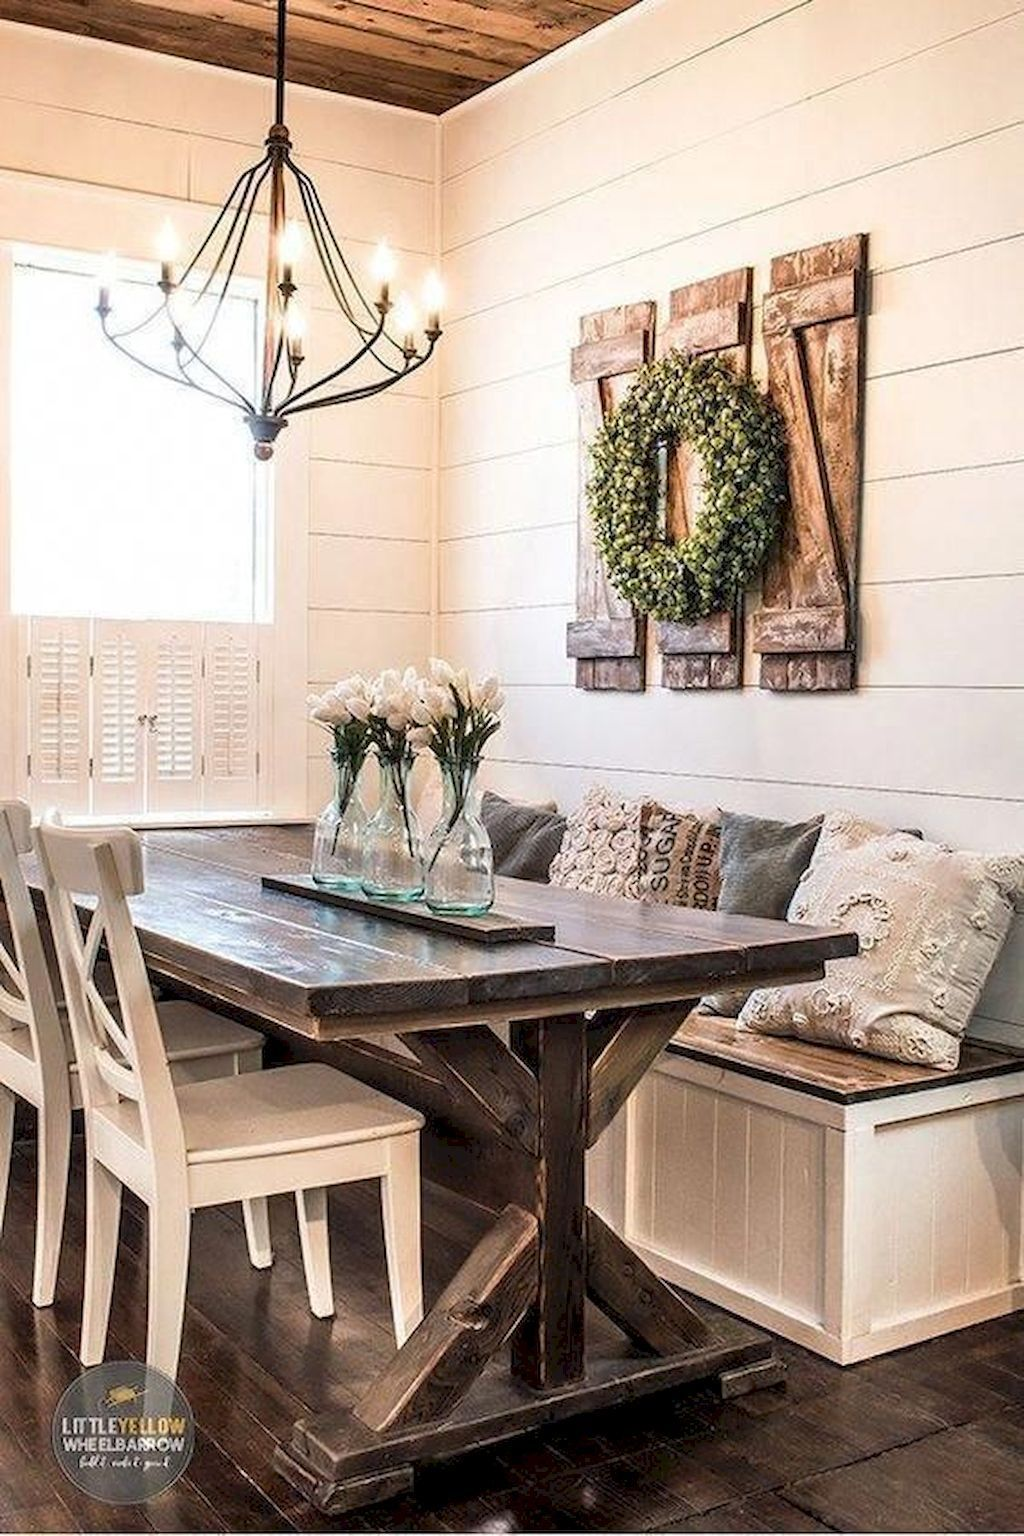 20 Easy DIY Rustic Farmhouse Decor Ideas in 2020 ...